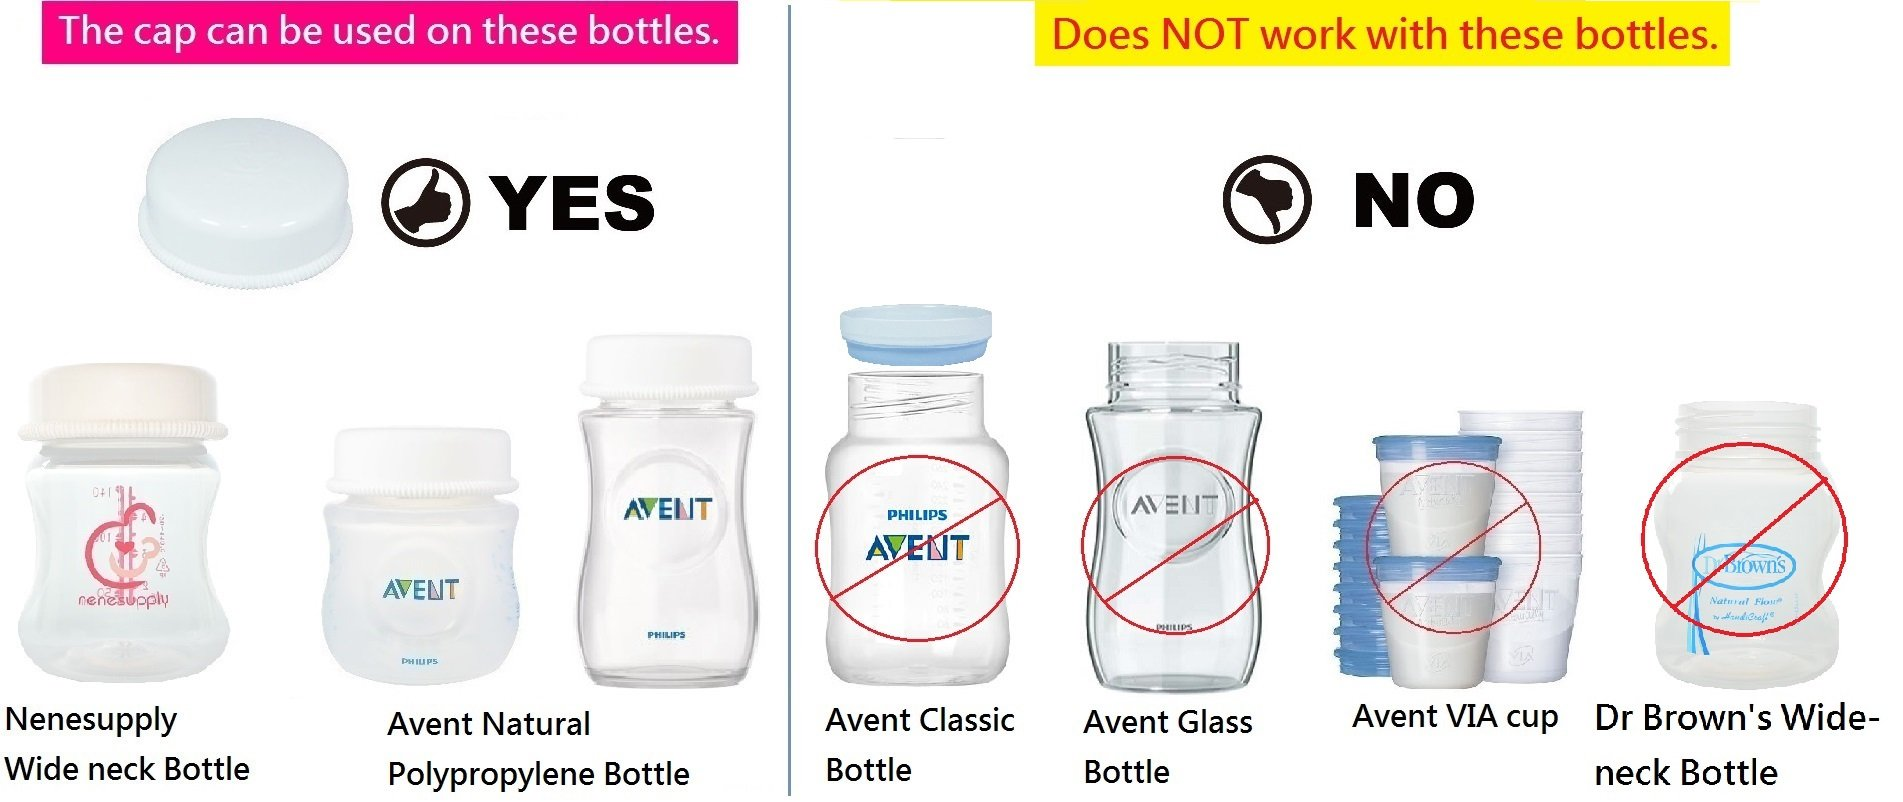 Sealing Caps Lids for Wide Neck Collection Bottle Avent Natural Polypropylene Bottles and Nenesupply Mouth Neck Bottles Storage Bottle Cap Replace Avent Natural Bottle Sealing Ring and Sealing Disc by NENESUPPLY (Image #2)